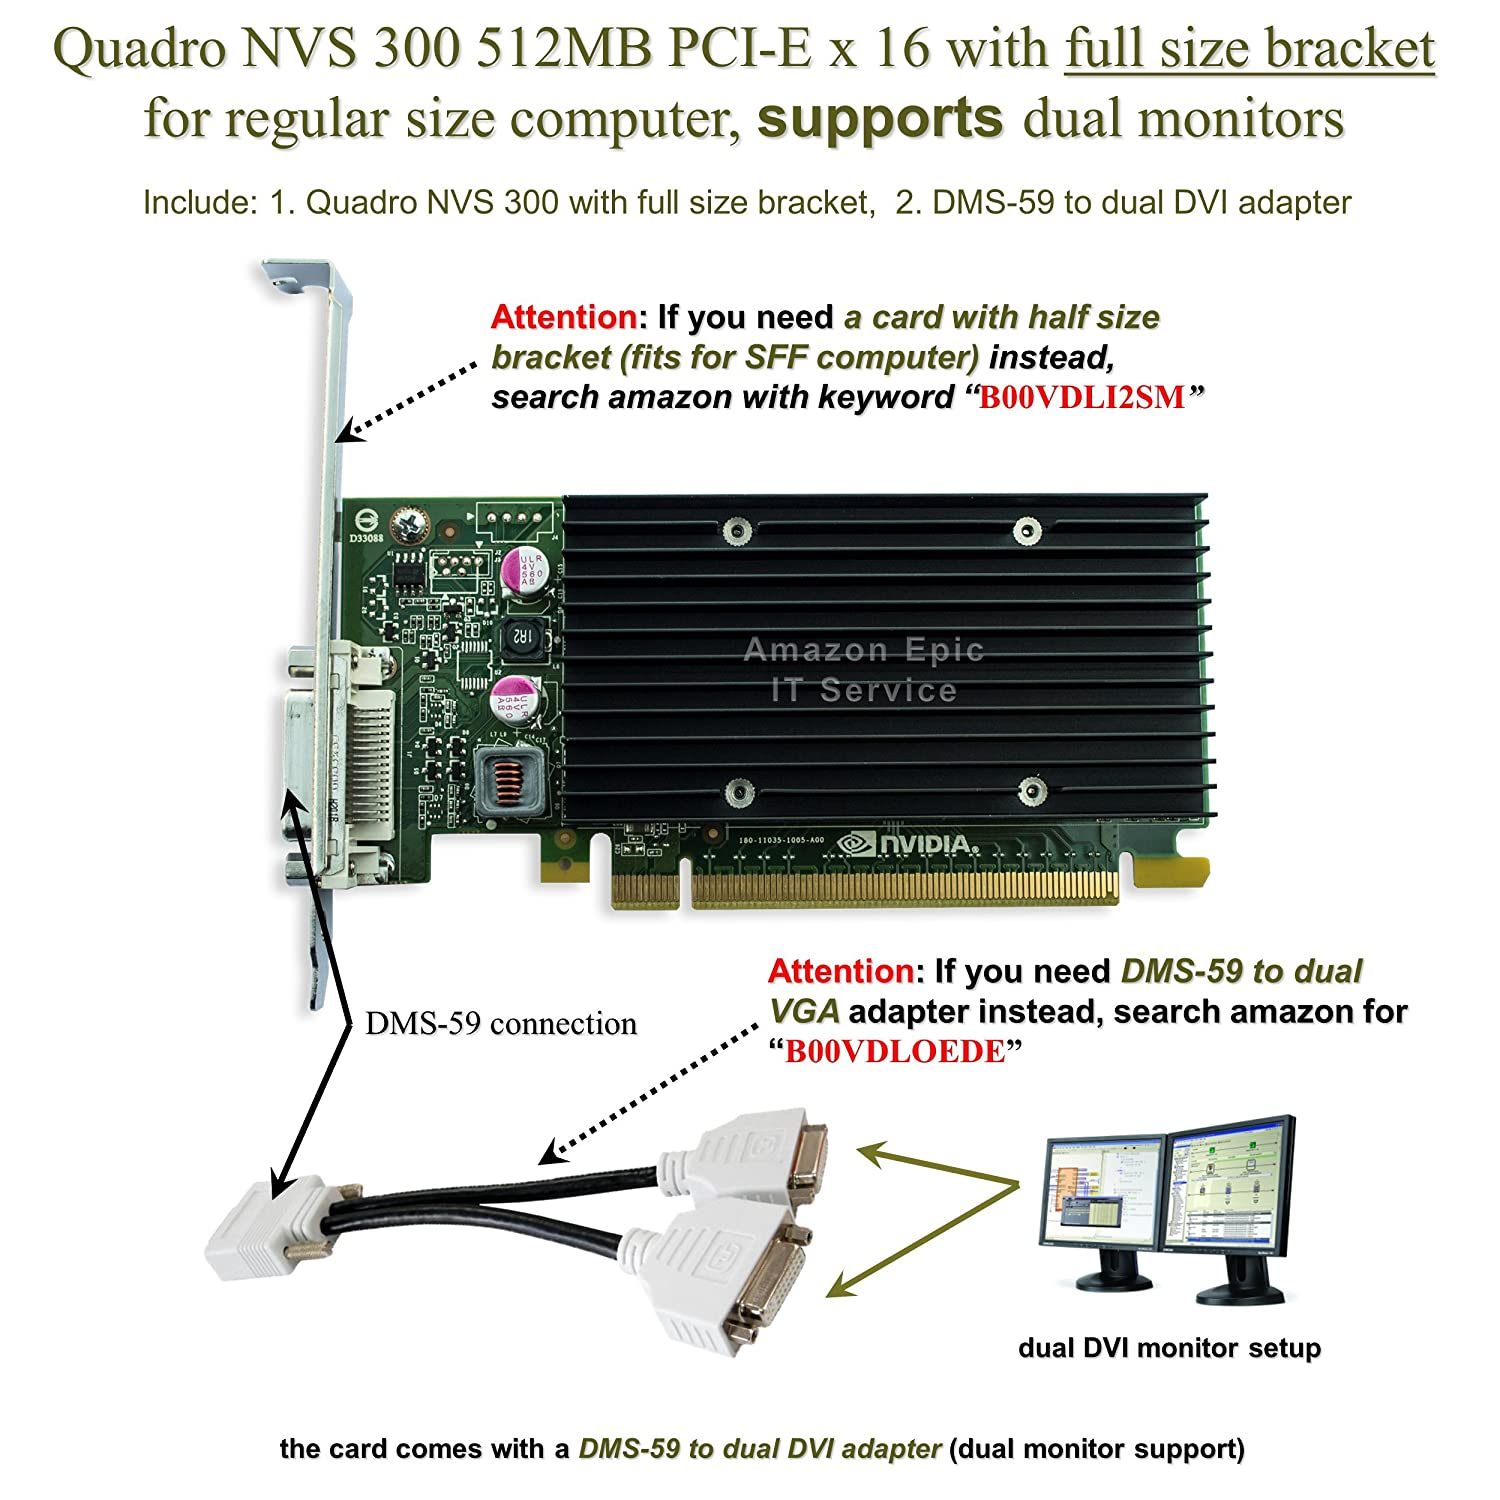 Epic It Service Quadro Nvs 300 Pci E X 16 Full Size Express Wiring Diagram Bracket Dms 59 To Dual Dvi Adapter Computers Accessories